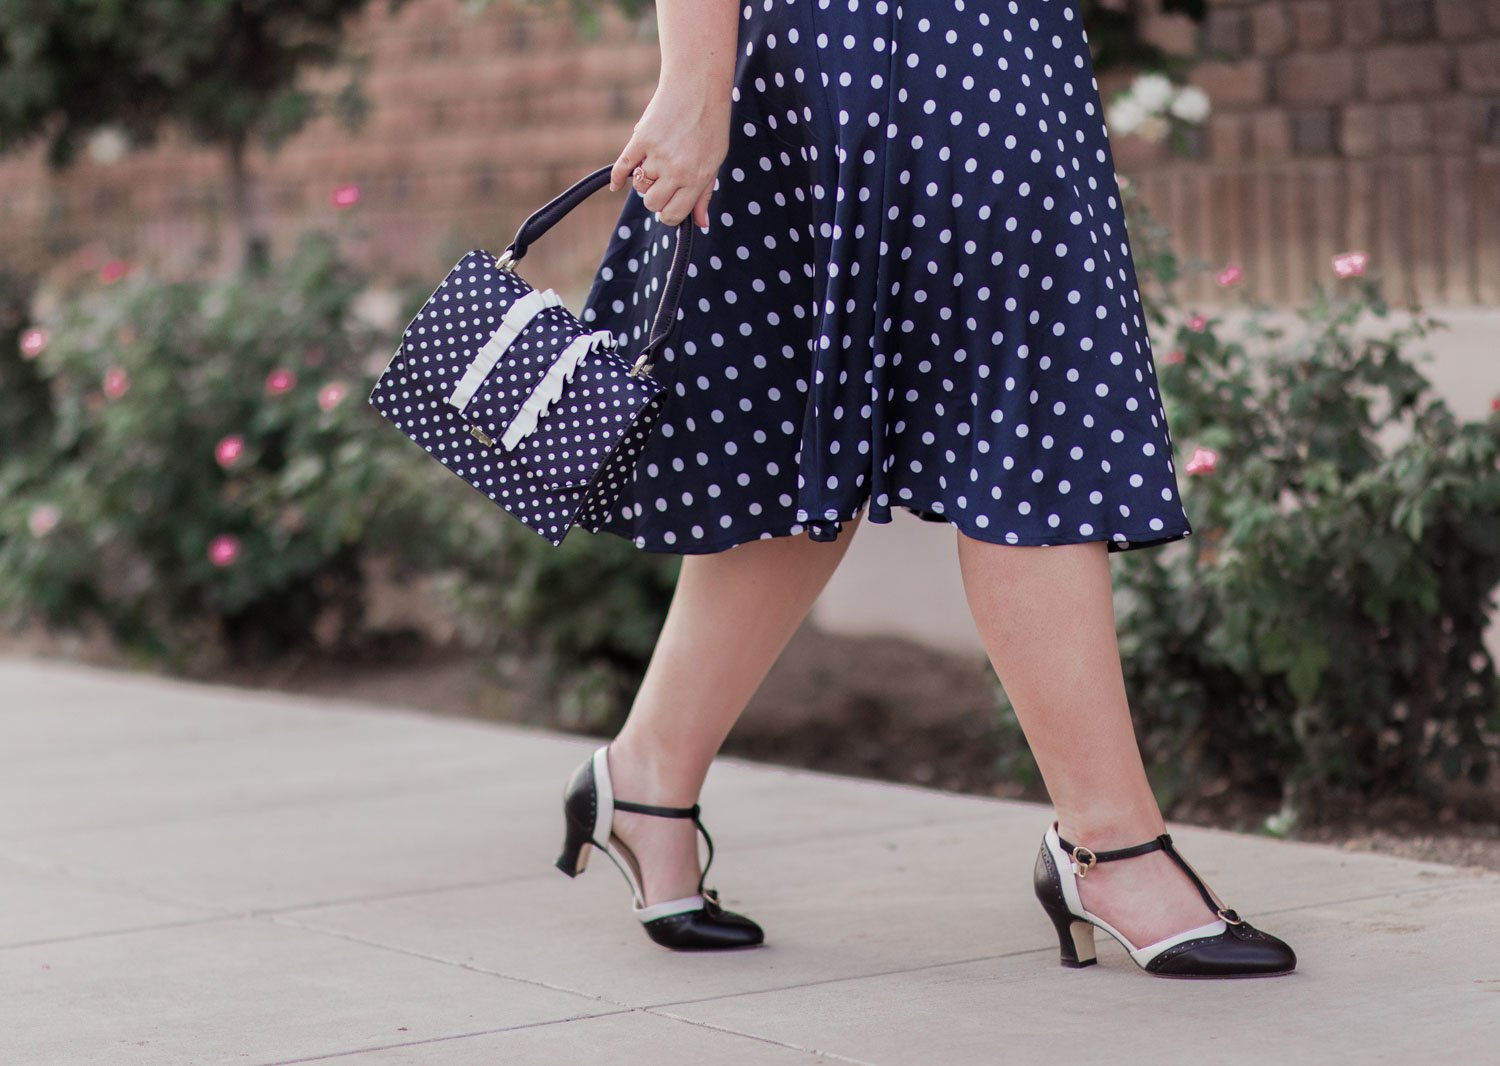 Elizabeth Hugen of Lizzie in Lace shares her feminine vintage style outfit with Charlie Stone heels!